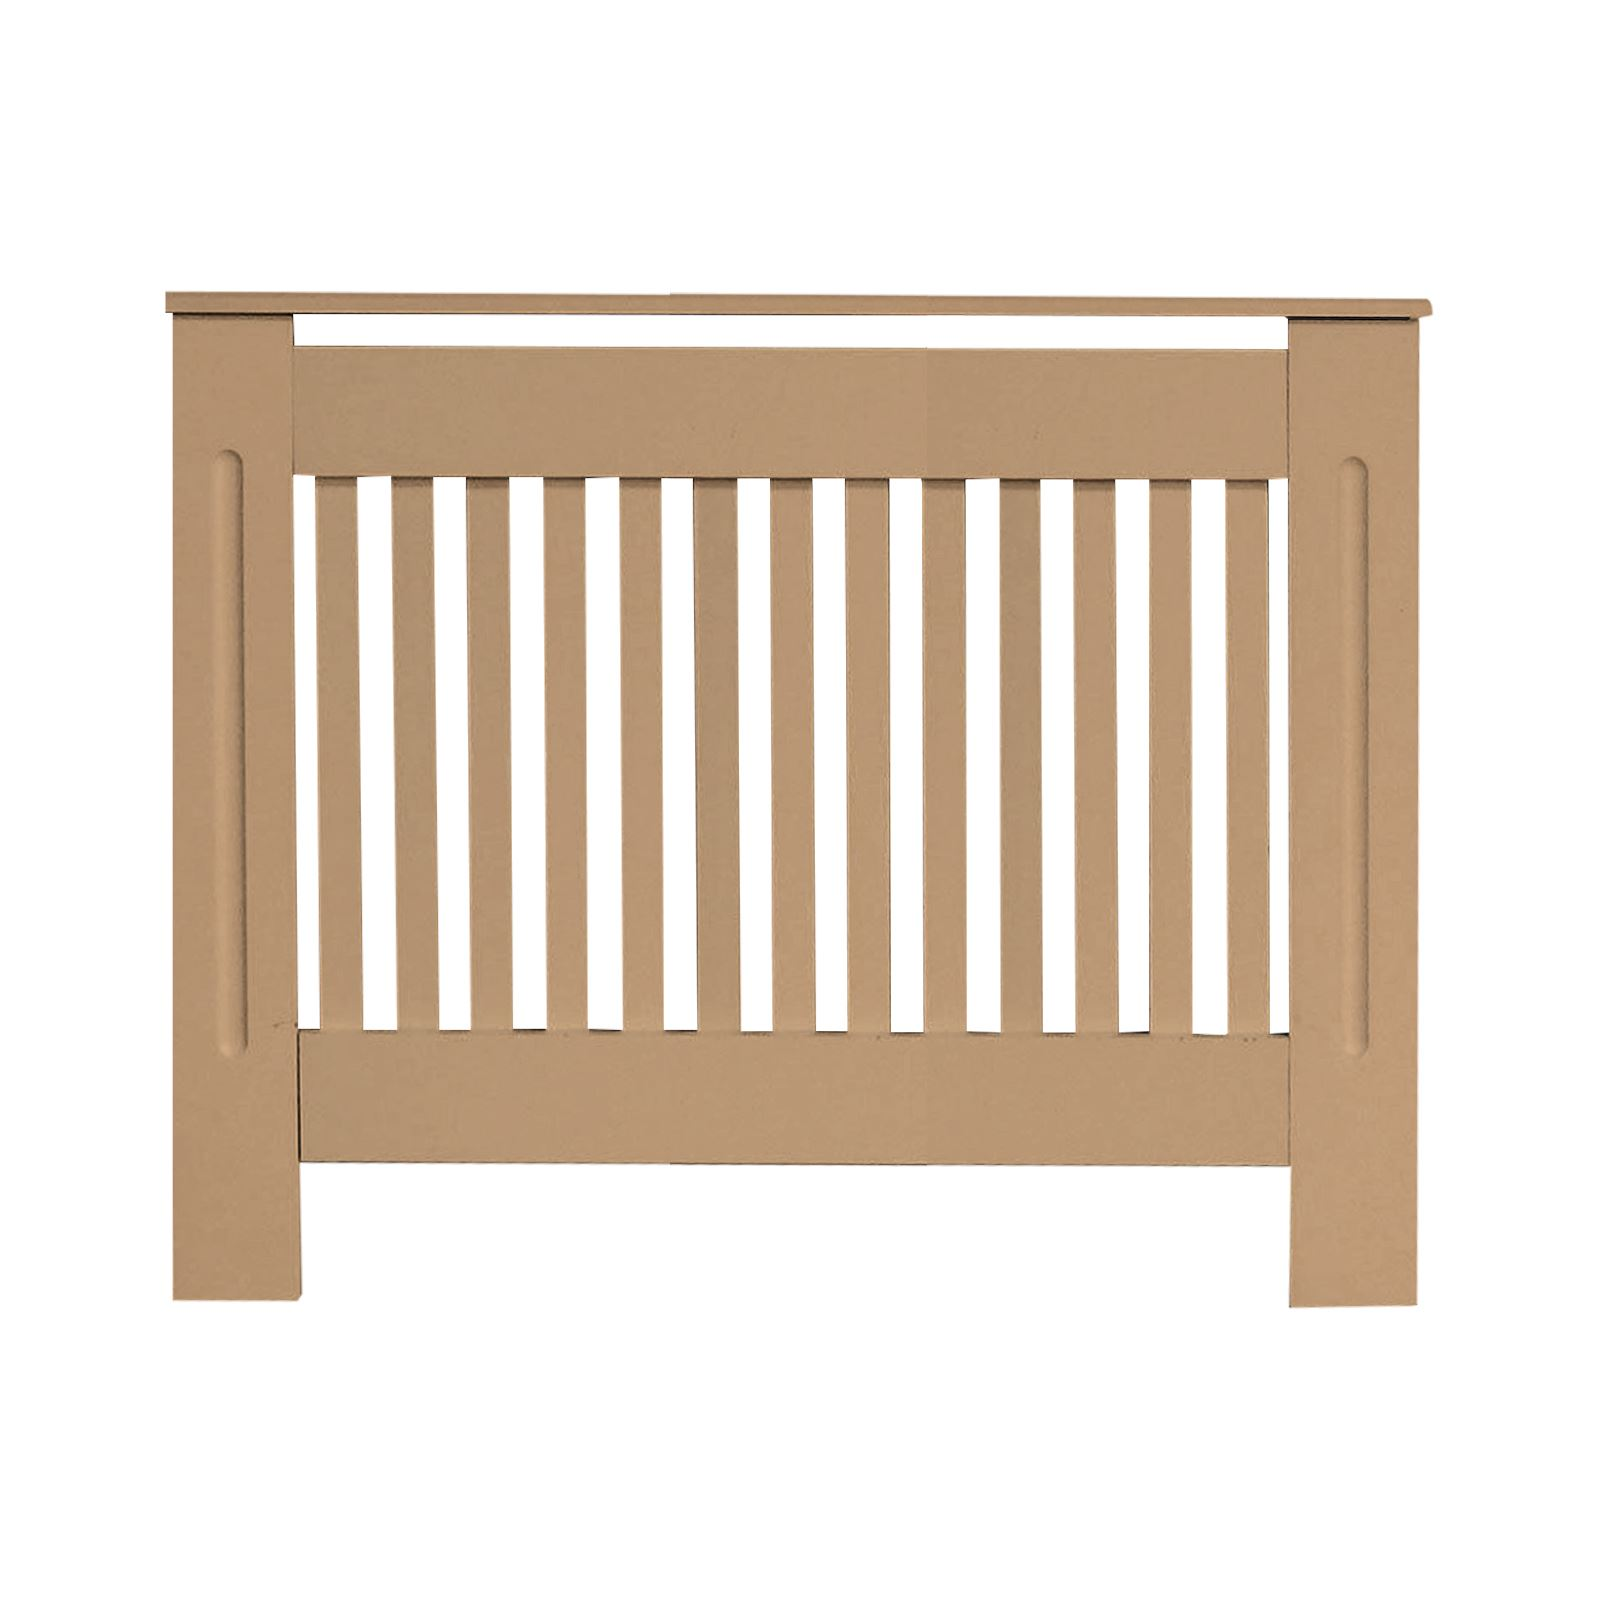 Traditional-Radiator-Cover-Cabinet-Vertical-Slatted-MDF-Wood-Small-Large-Unit thumbnail 16